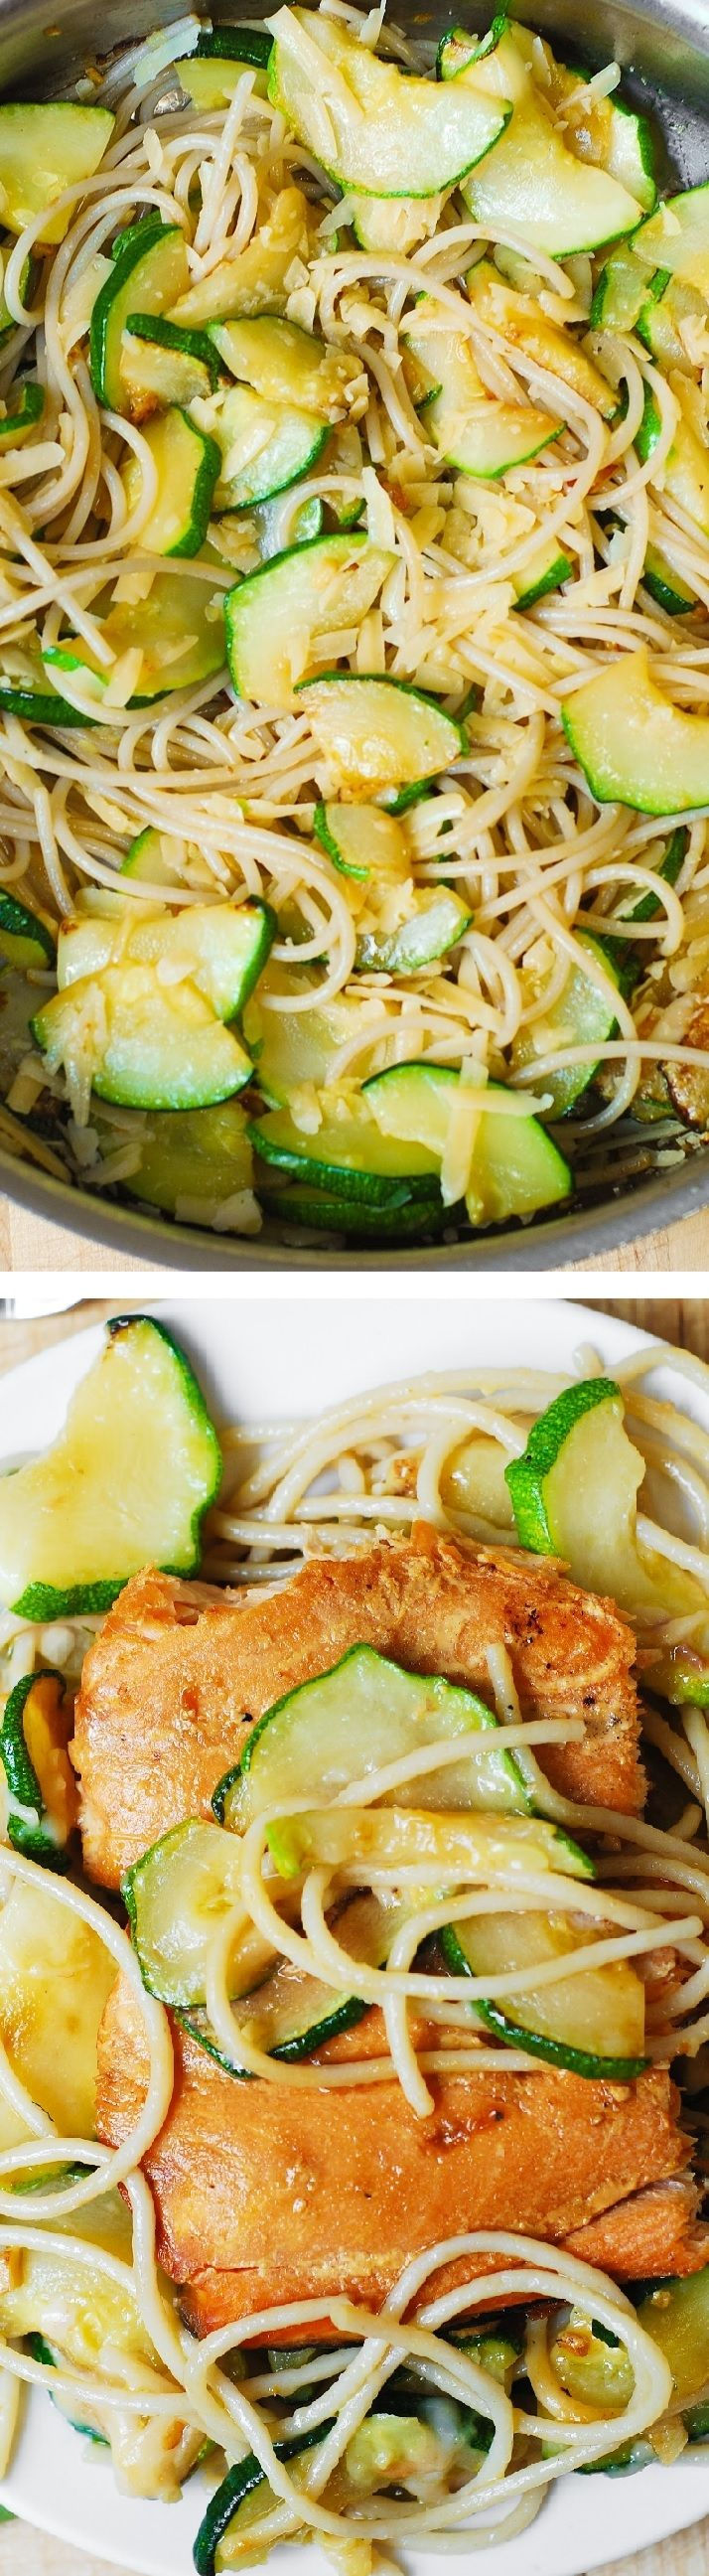 Salmon and Parmesan Zucchini Pasta (Spaghetti). Salmon fillets grilled in foil packets. Healthy dinner full of omega 3 oils!